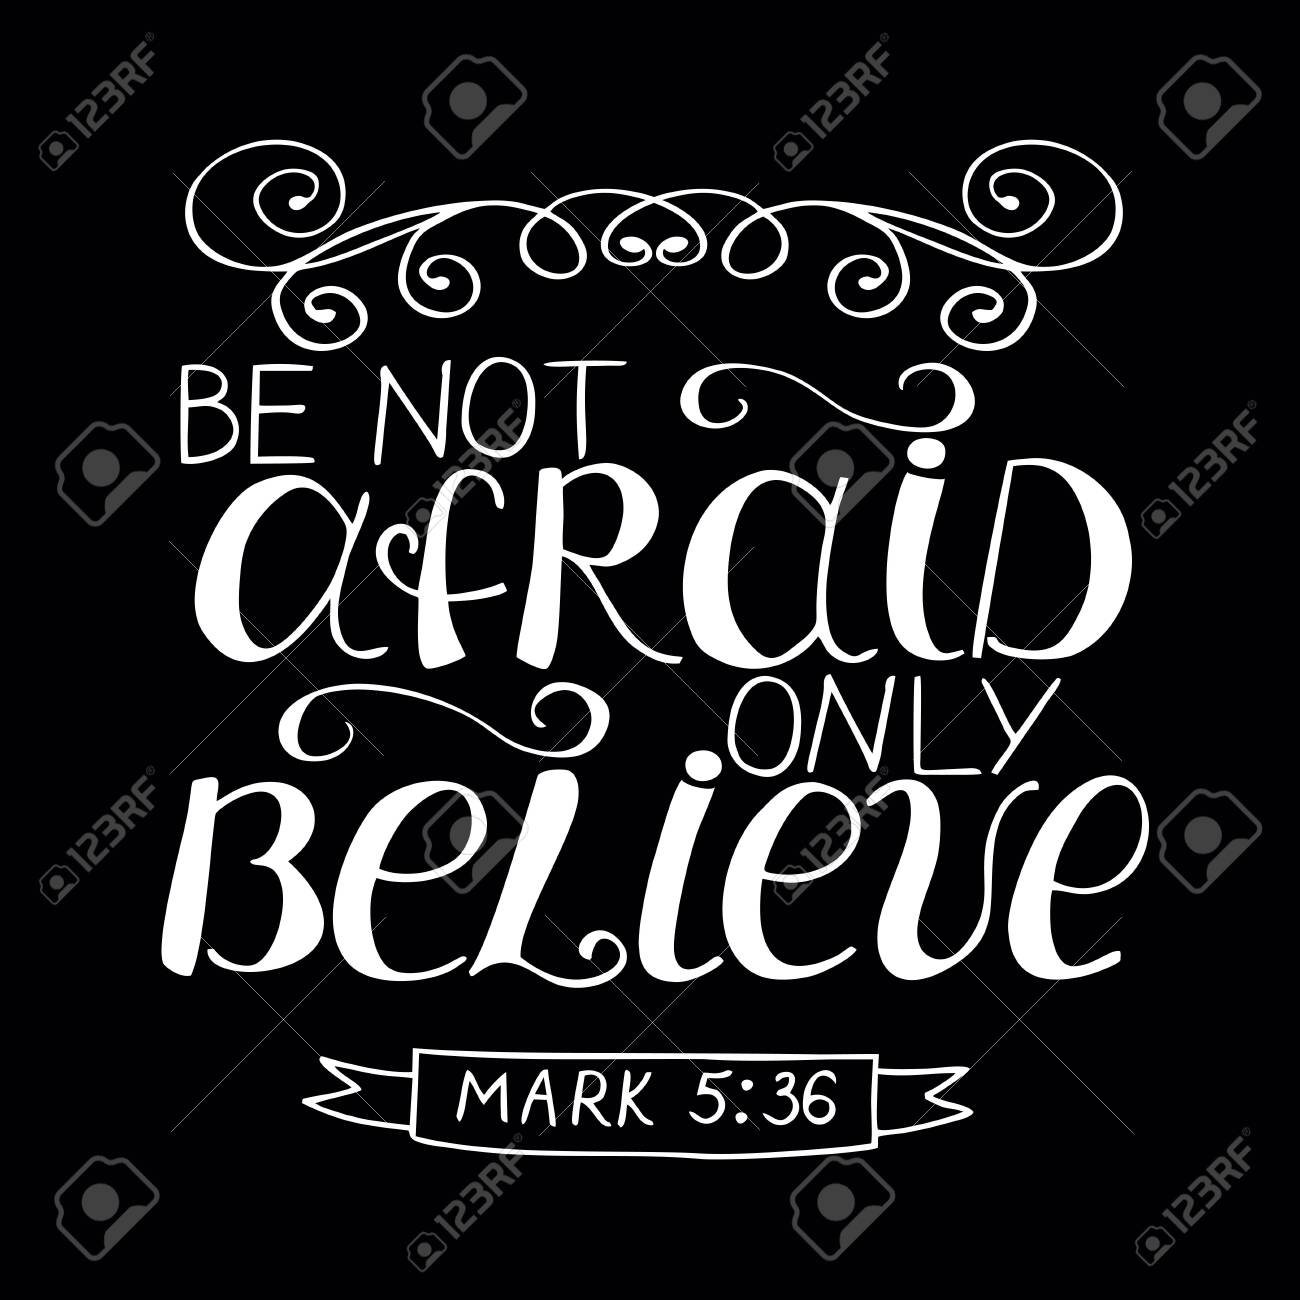 Image result for be not afraid, only believe.""